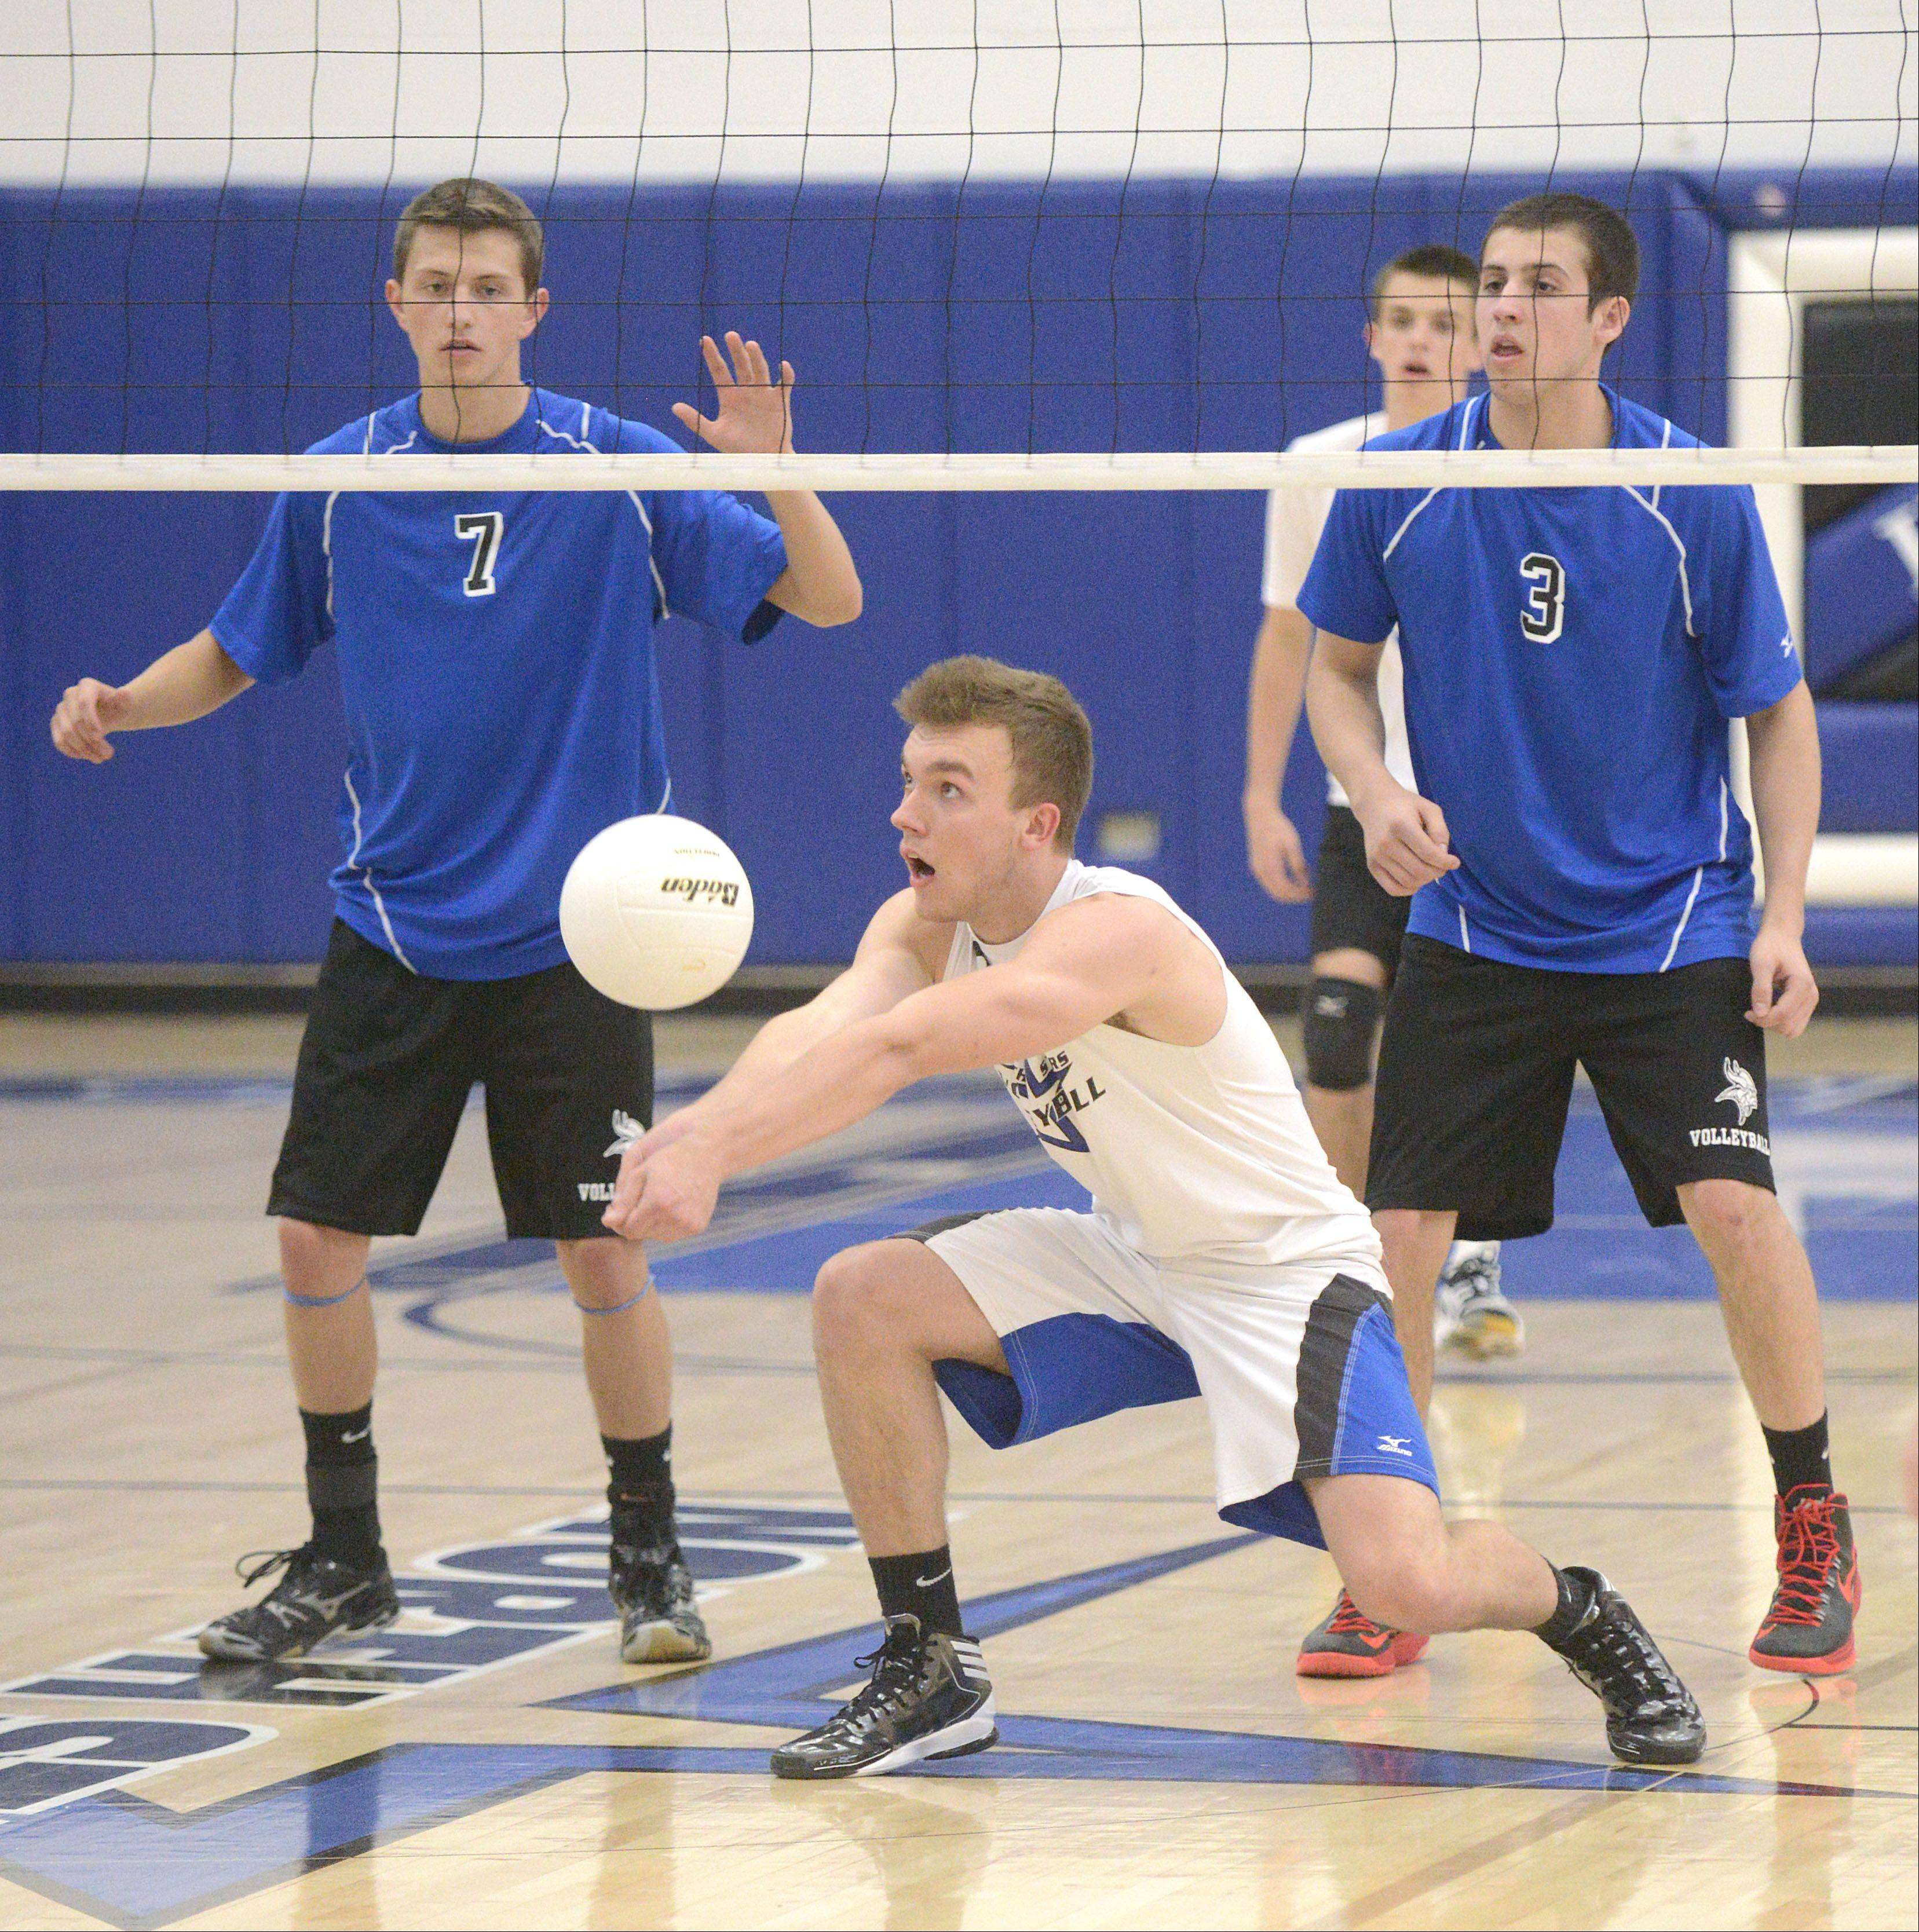 St. Charles North's Pat Misiewicz gets low to bump the ball back over the net to Geneva's Dominic Bondi and Chris Parilli in the first match on Tuesday, May 7.